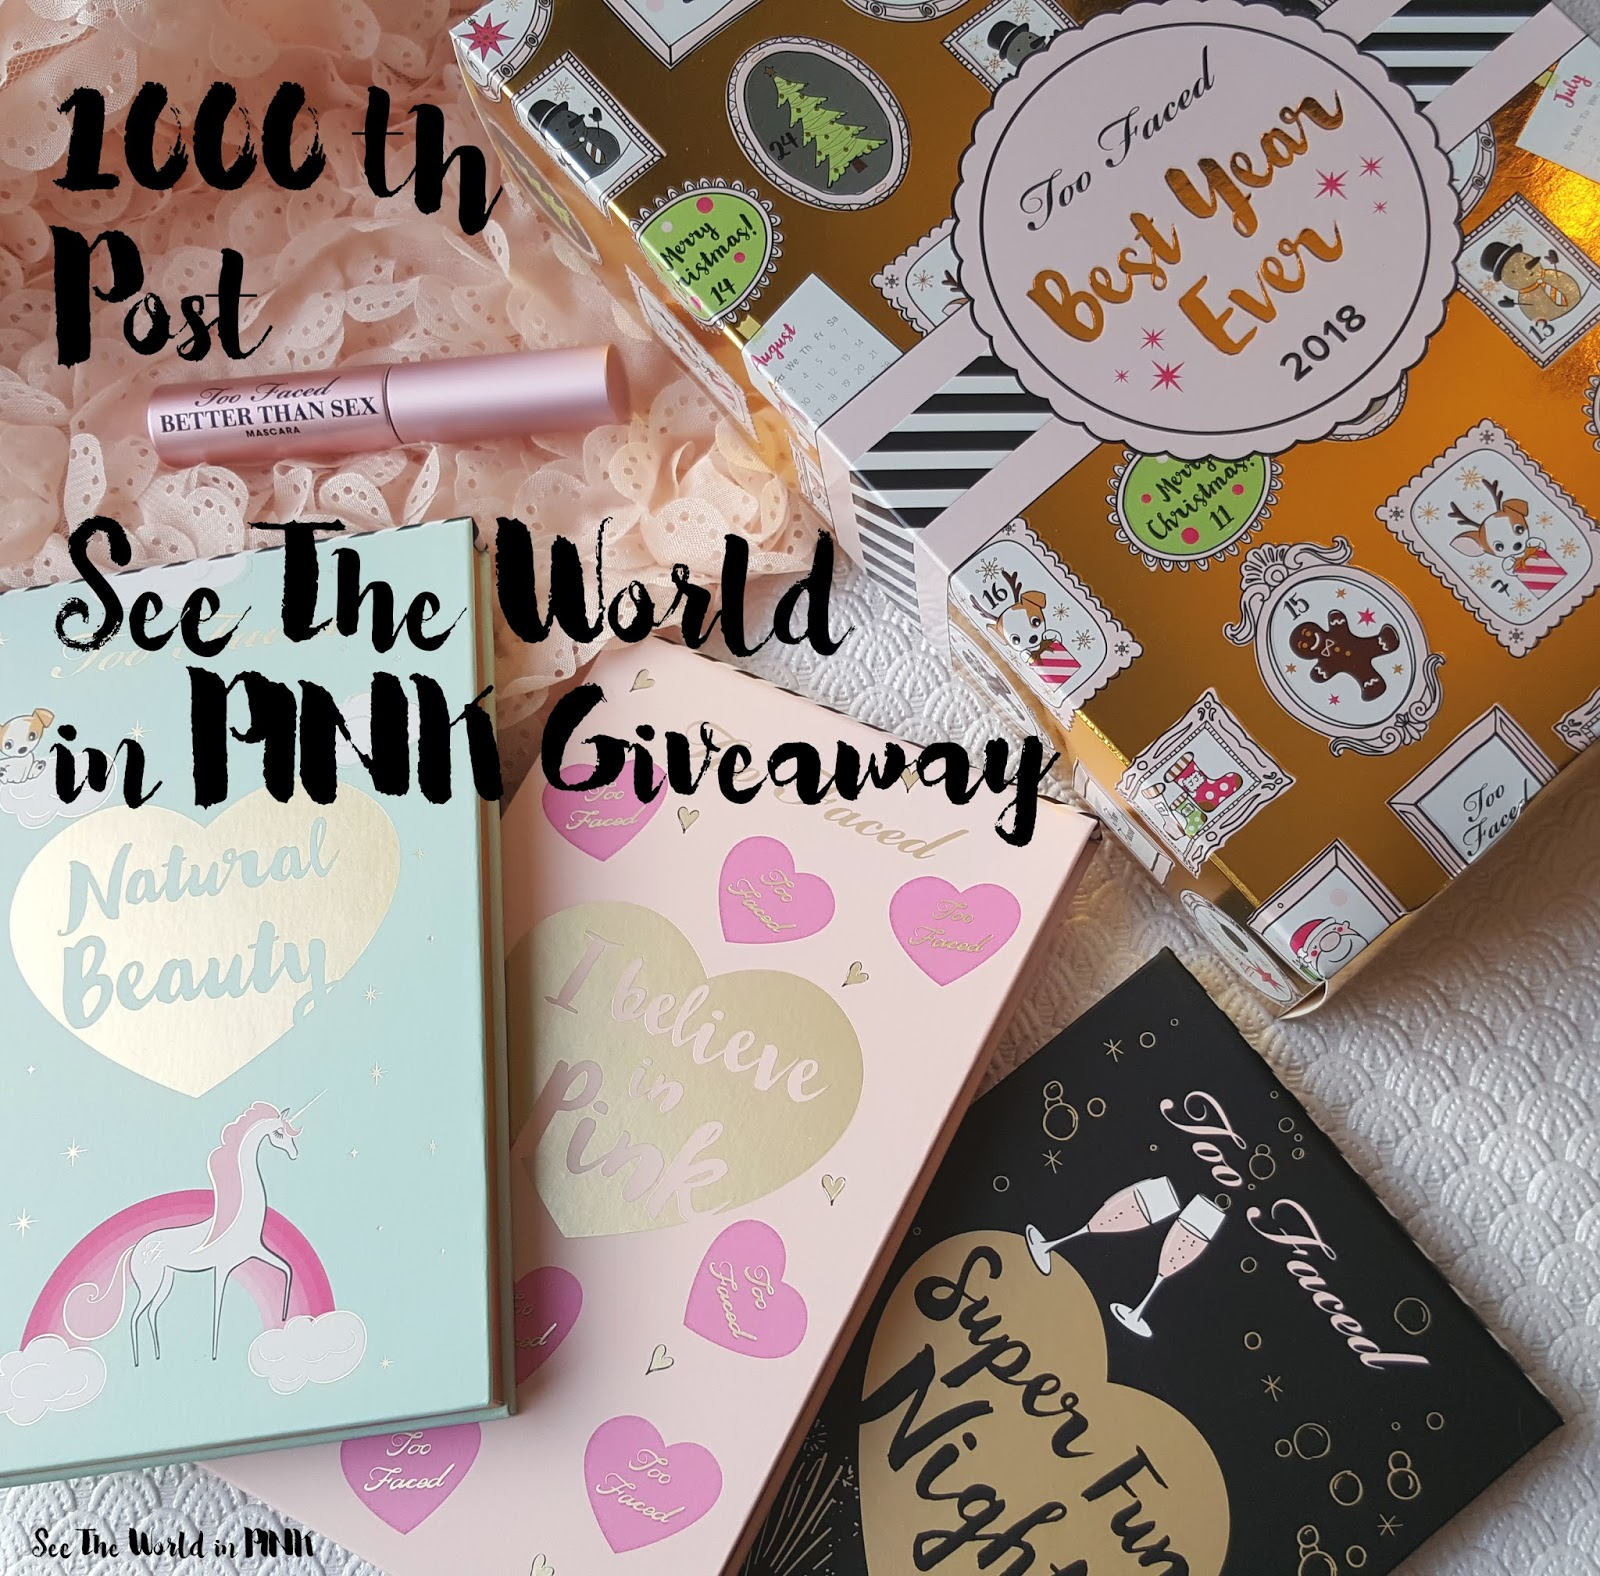 See The World in PINK's 1000 Post Giveaway!